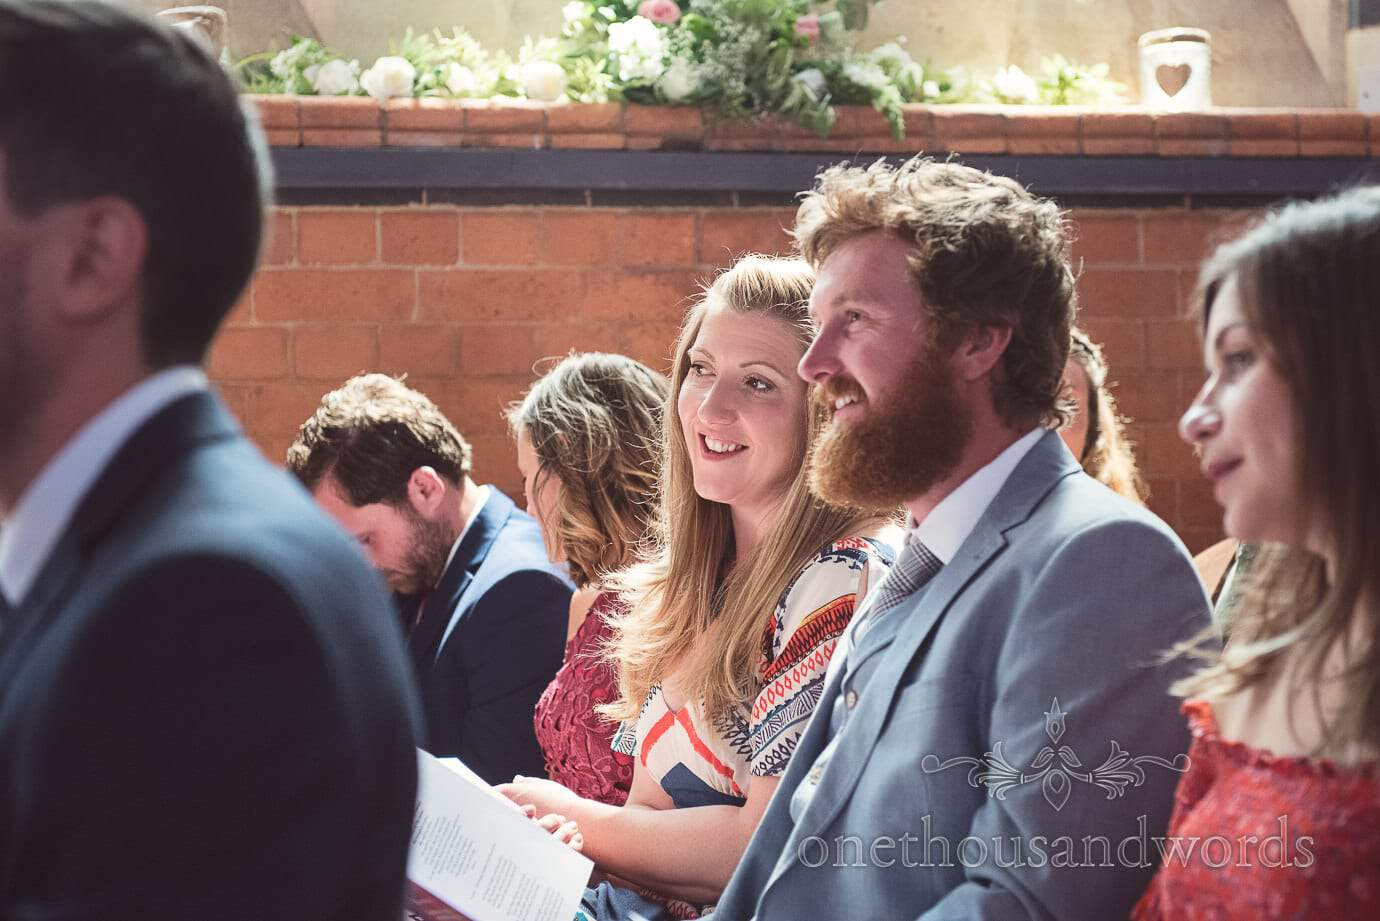 Beautiful blonde wedding guest smiles during church wedding ceremony